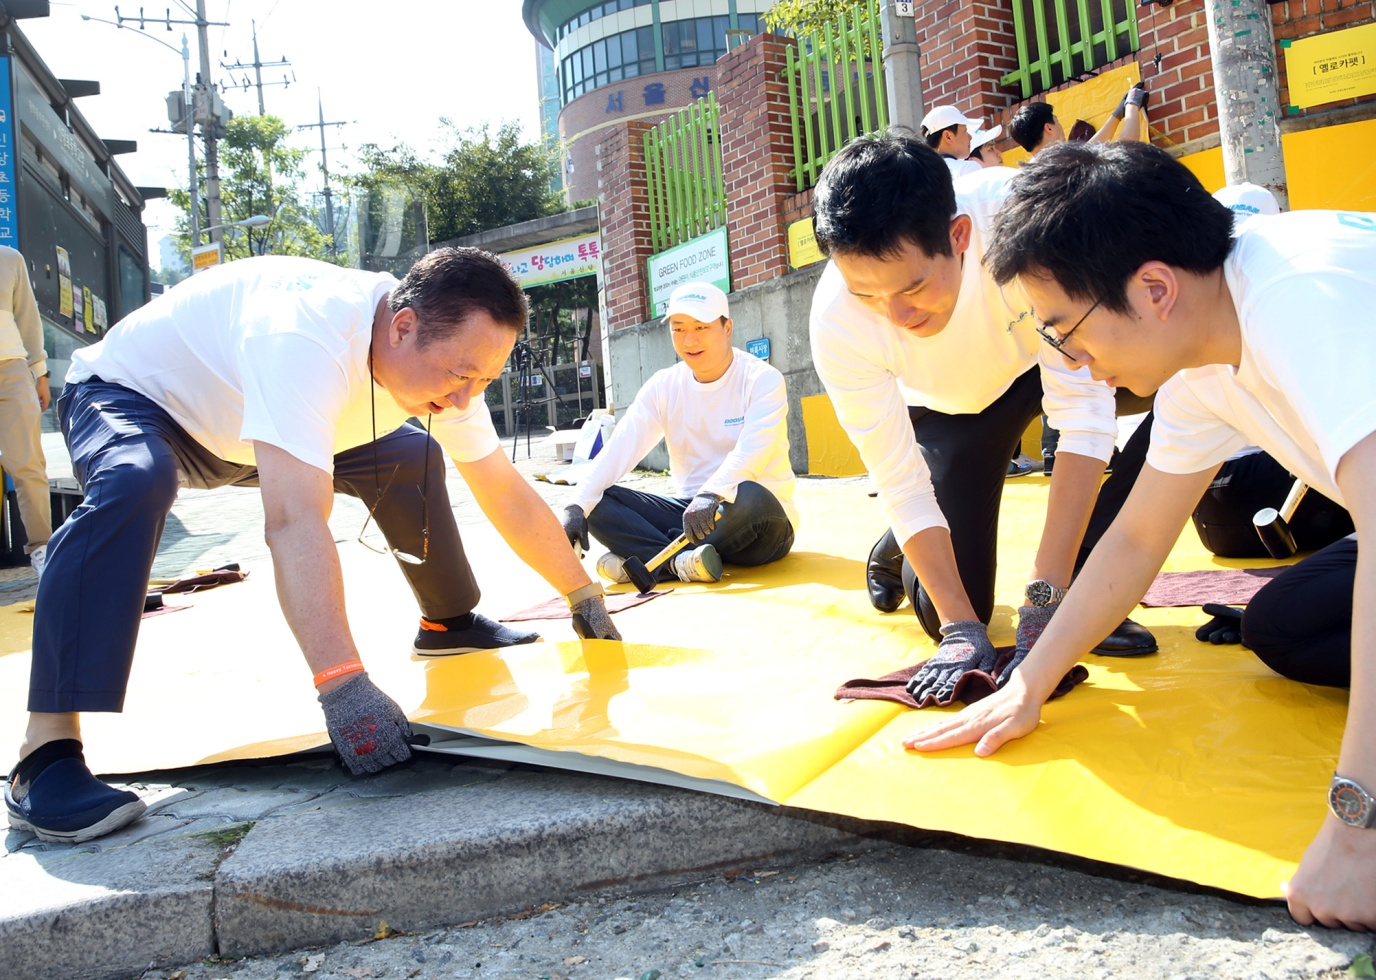 Park Yong-man, CEO of Doosan (middle), together with his employees, are affixing Yellow Carpet to a crosswalk with a hammer near Shin-dang elementary school in Jung-gu, Seoul.